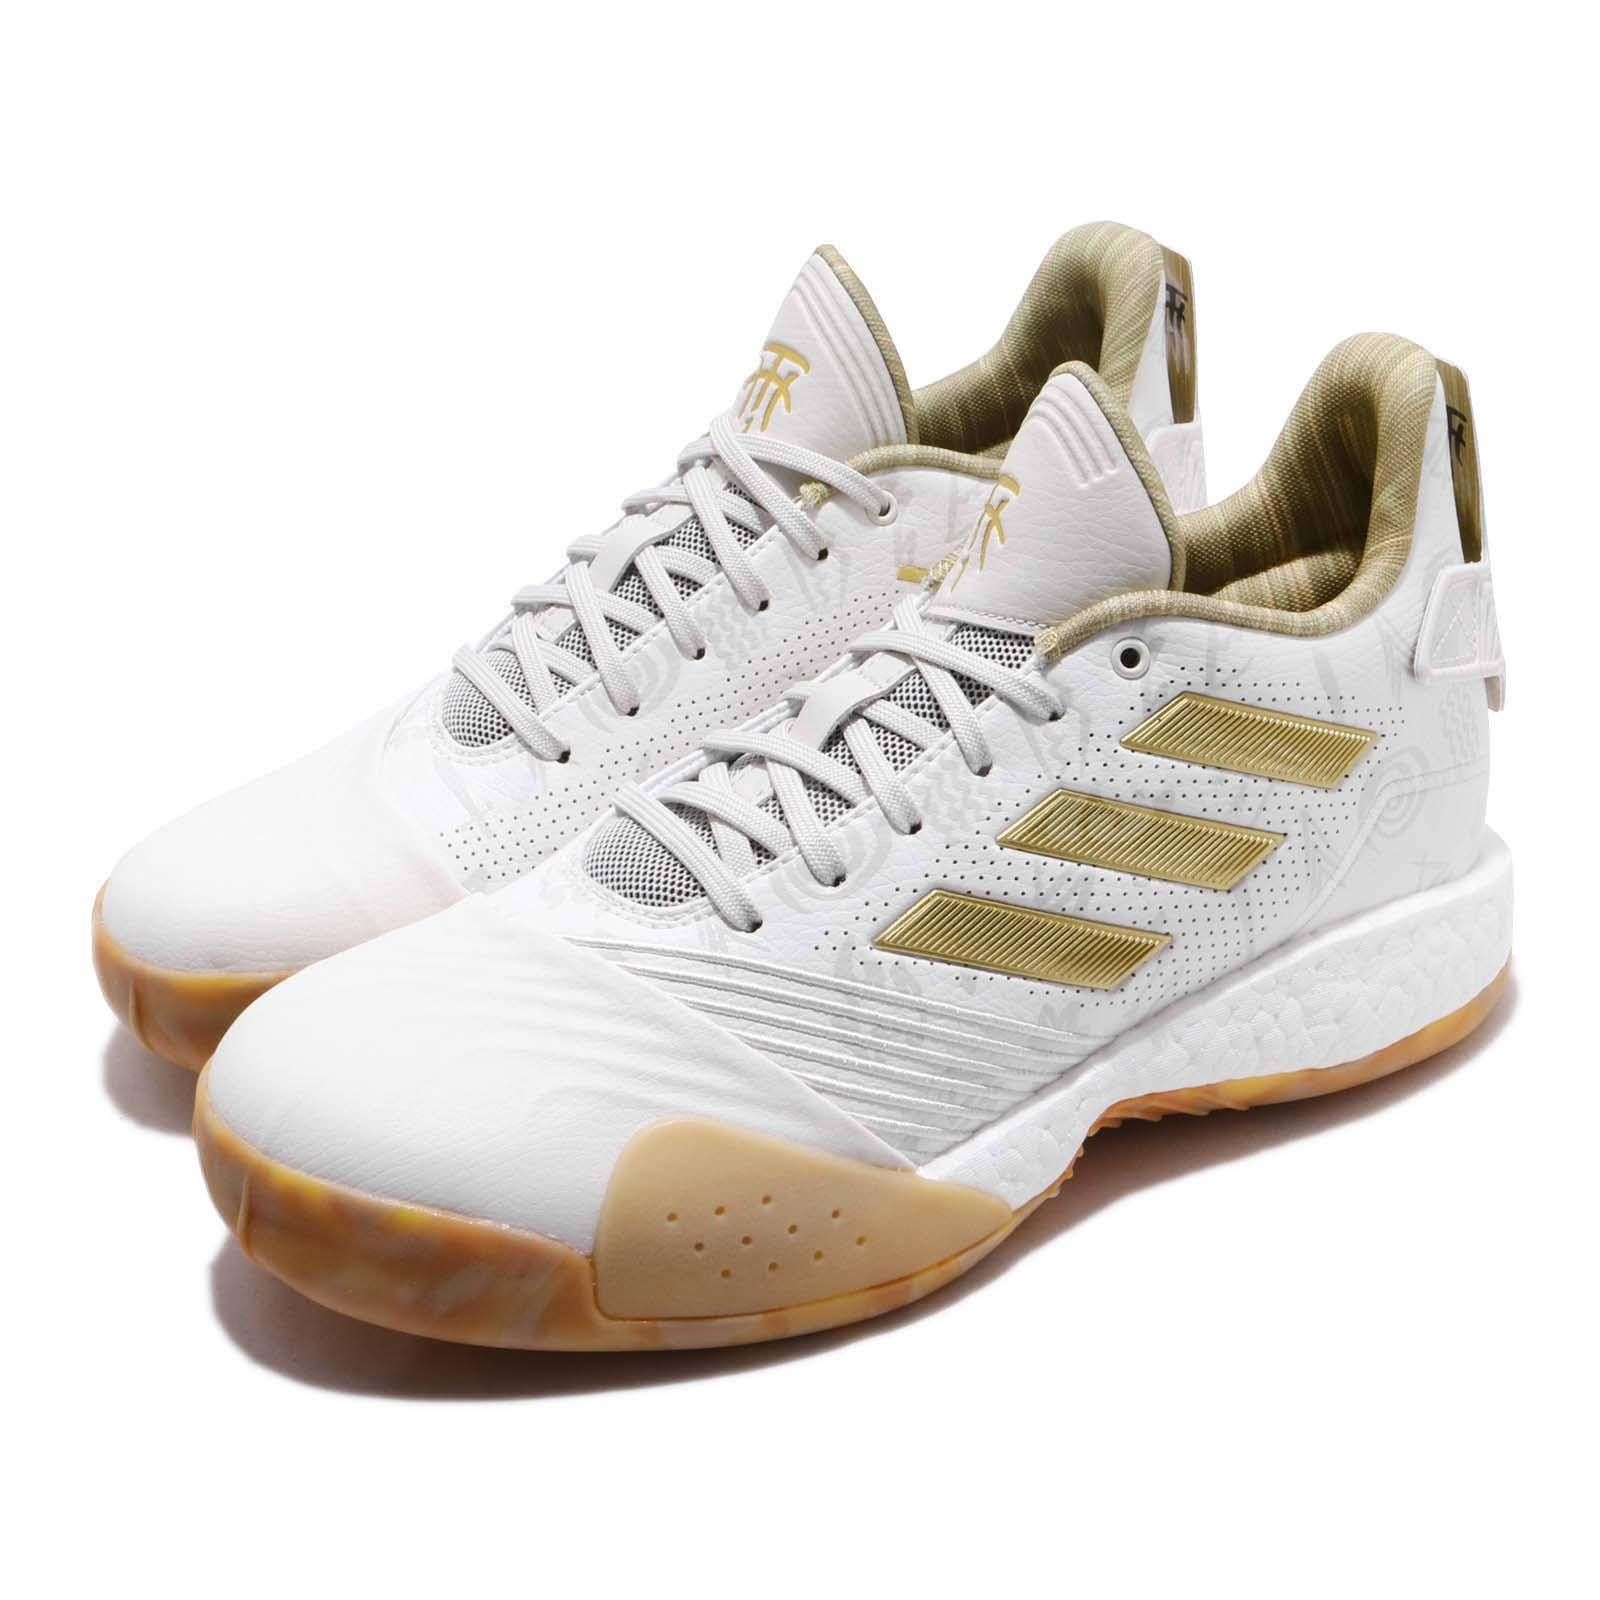 368f25d8 Details about adidas T-Mac Millennium White Gold Tracy McGrady Mens  Basketball Shoes G27750